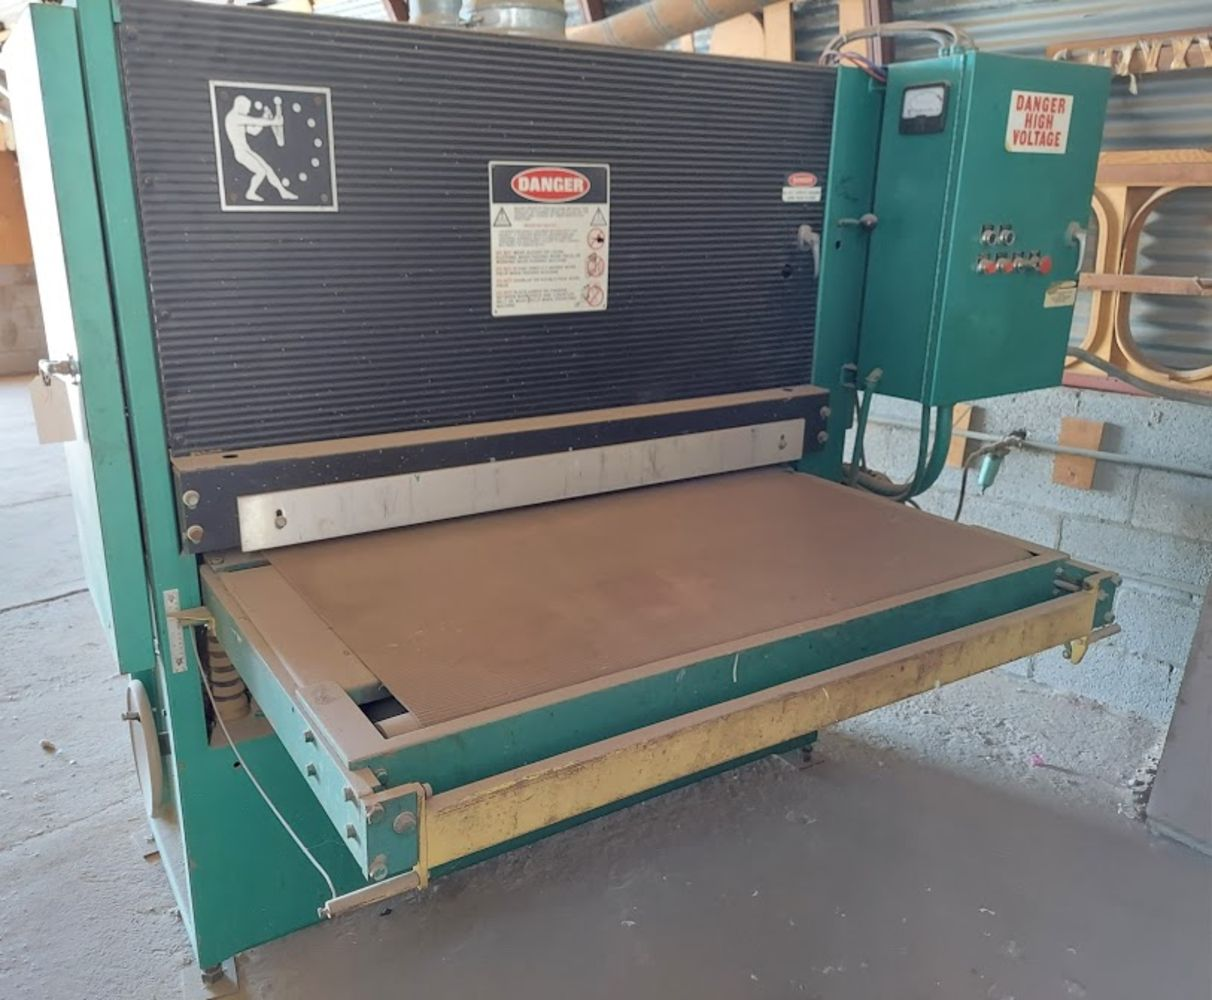 NICK & SONS CUSTOM CABINETS - OWNER RETIRING - NO RESERVES - AUCTION IN PHOENIX AZ